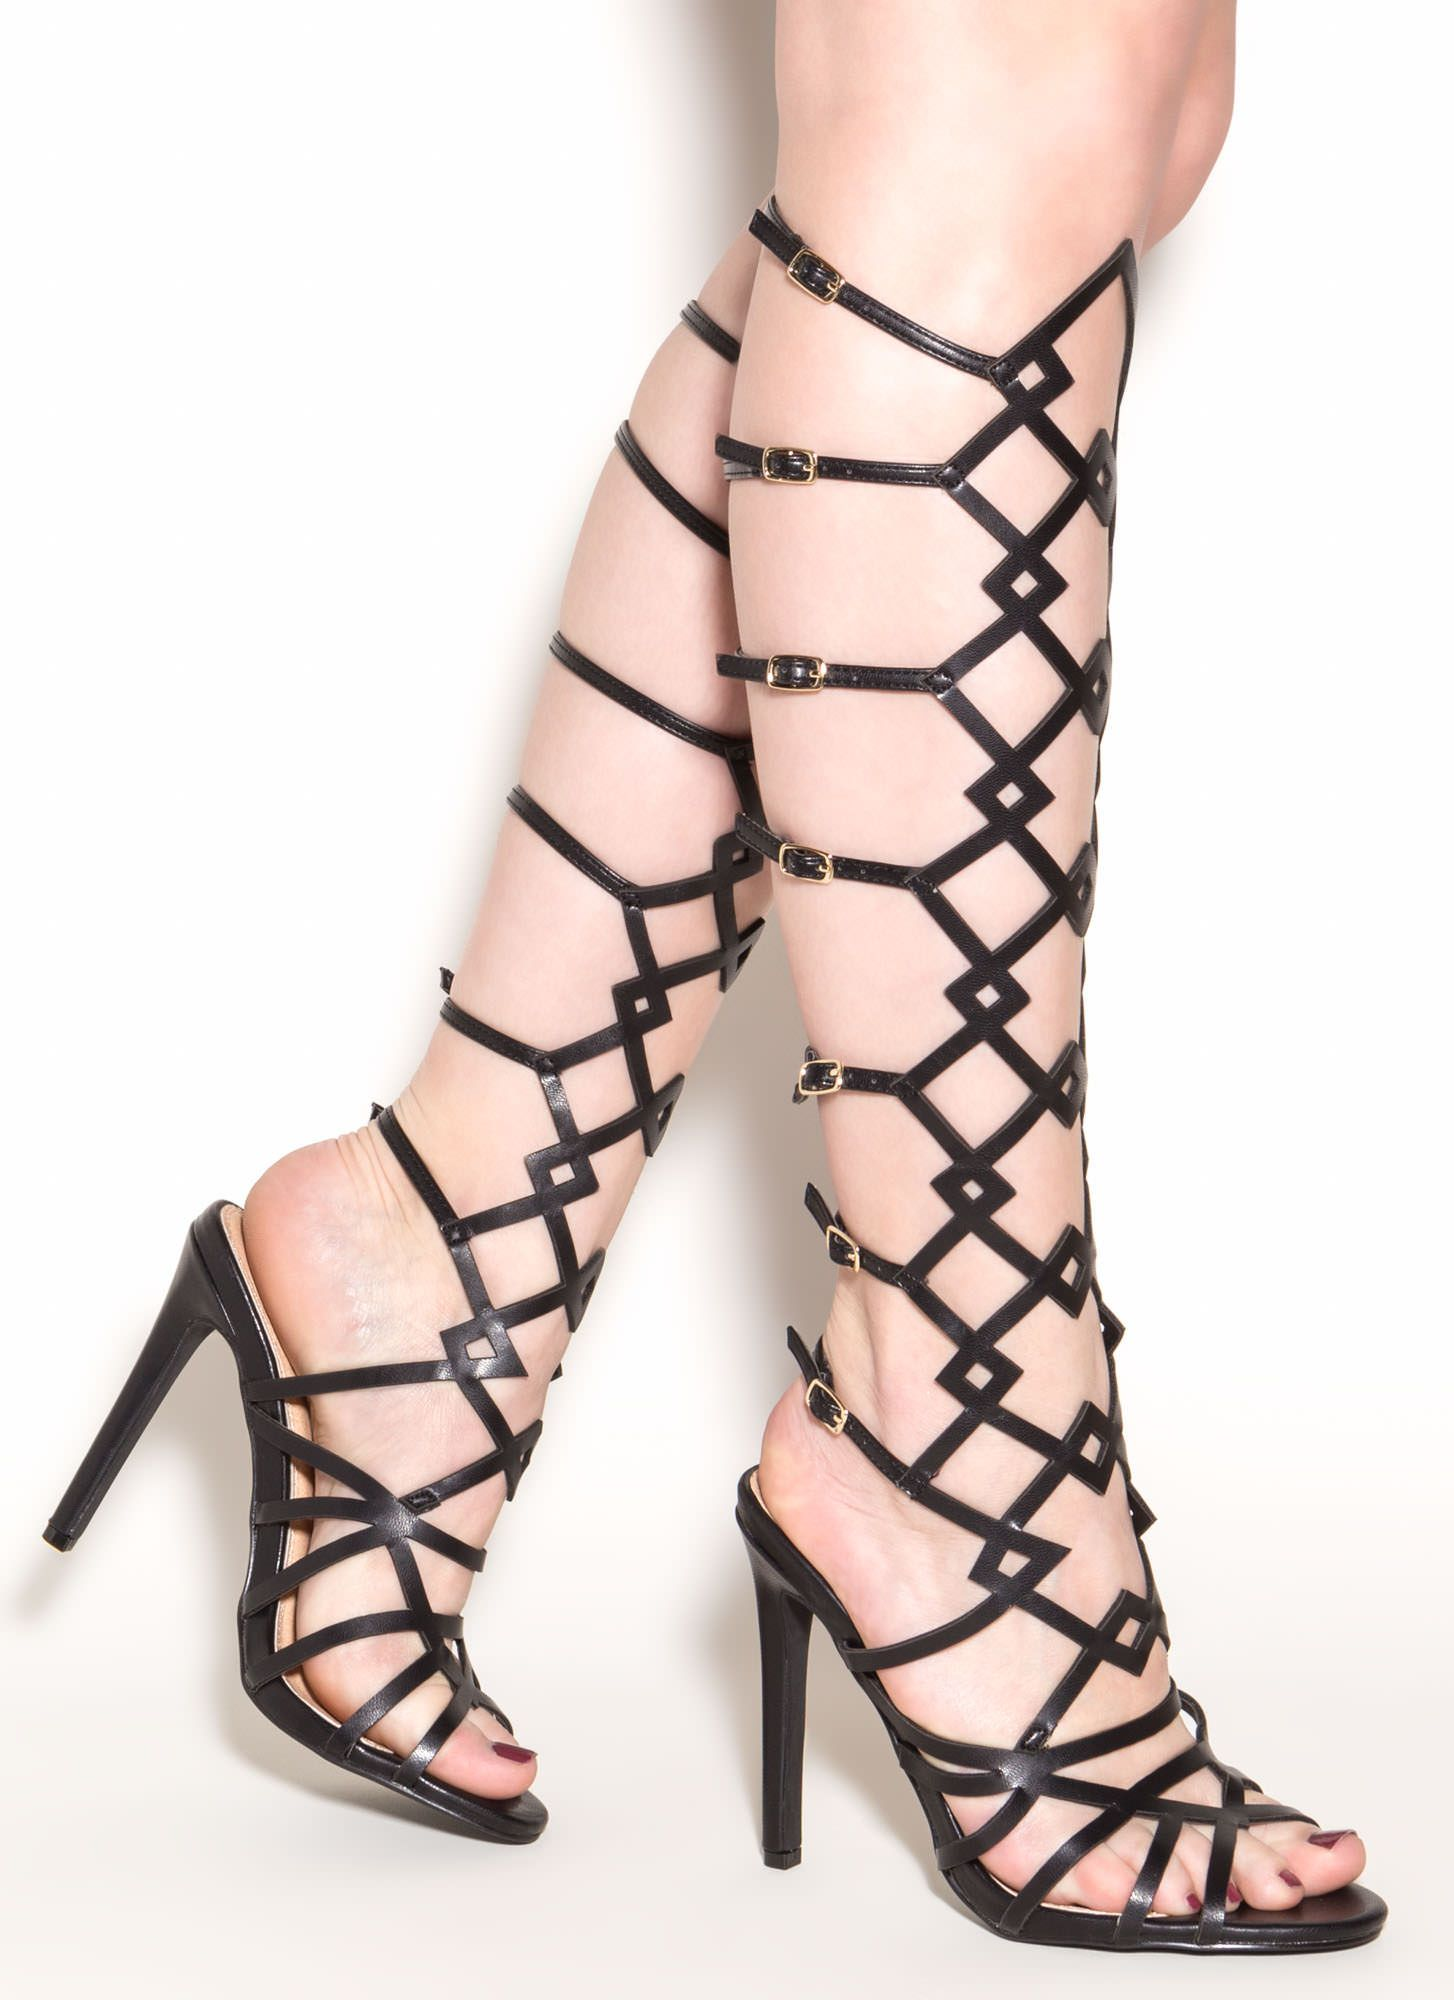 ff5610fb654b You ll be a walking work of art in these one-of-a-kind gladiator heels.   heels  gladiator  blackheels  inspo  buckle  strappy  gojane